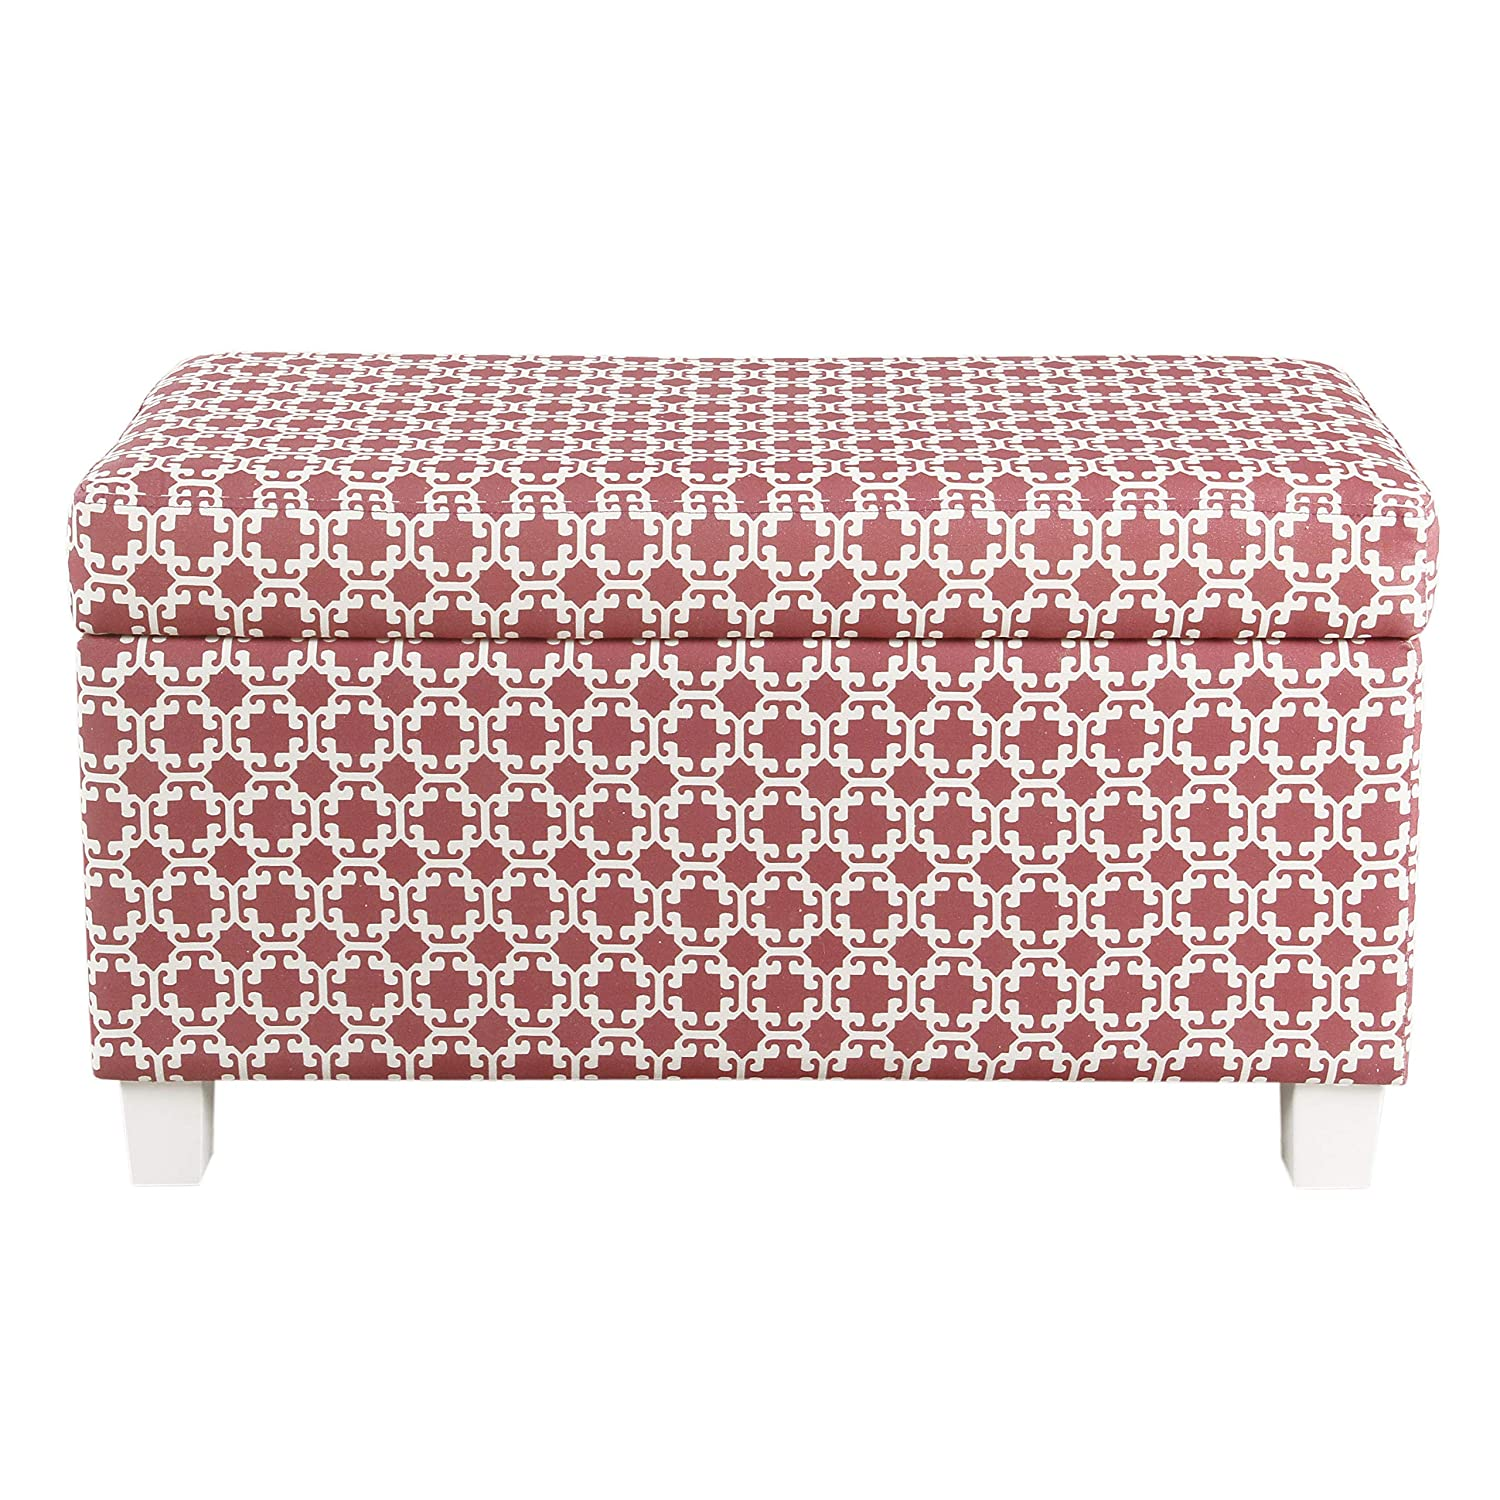 HomePop Youth Upholstered Storage Bench with Hinged Lid, Pink and White Lattice